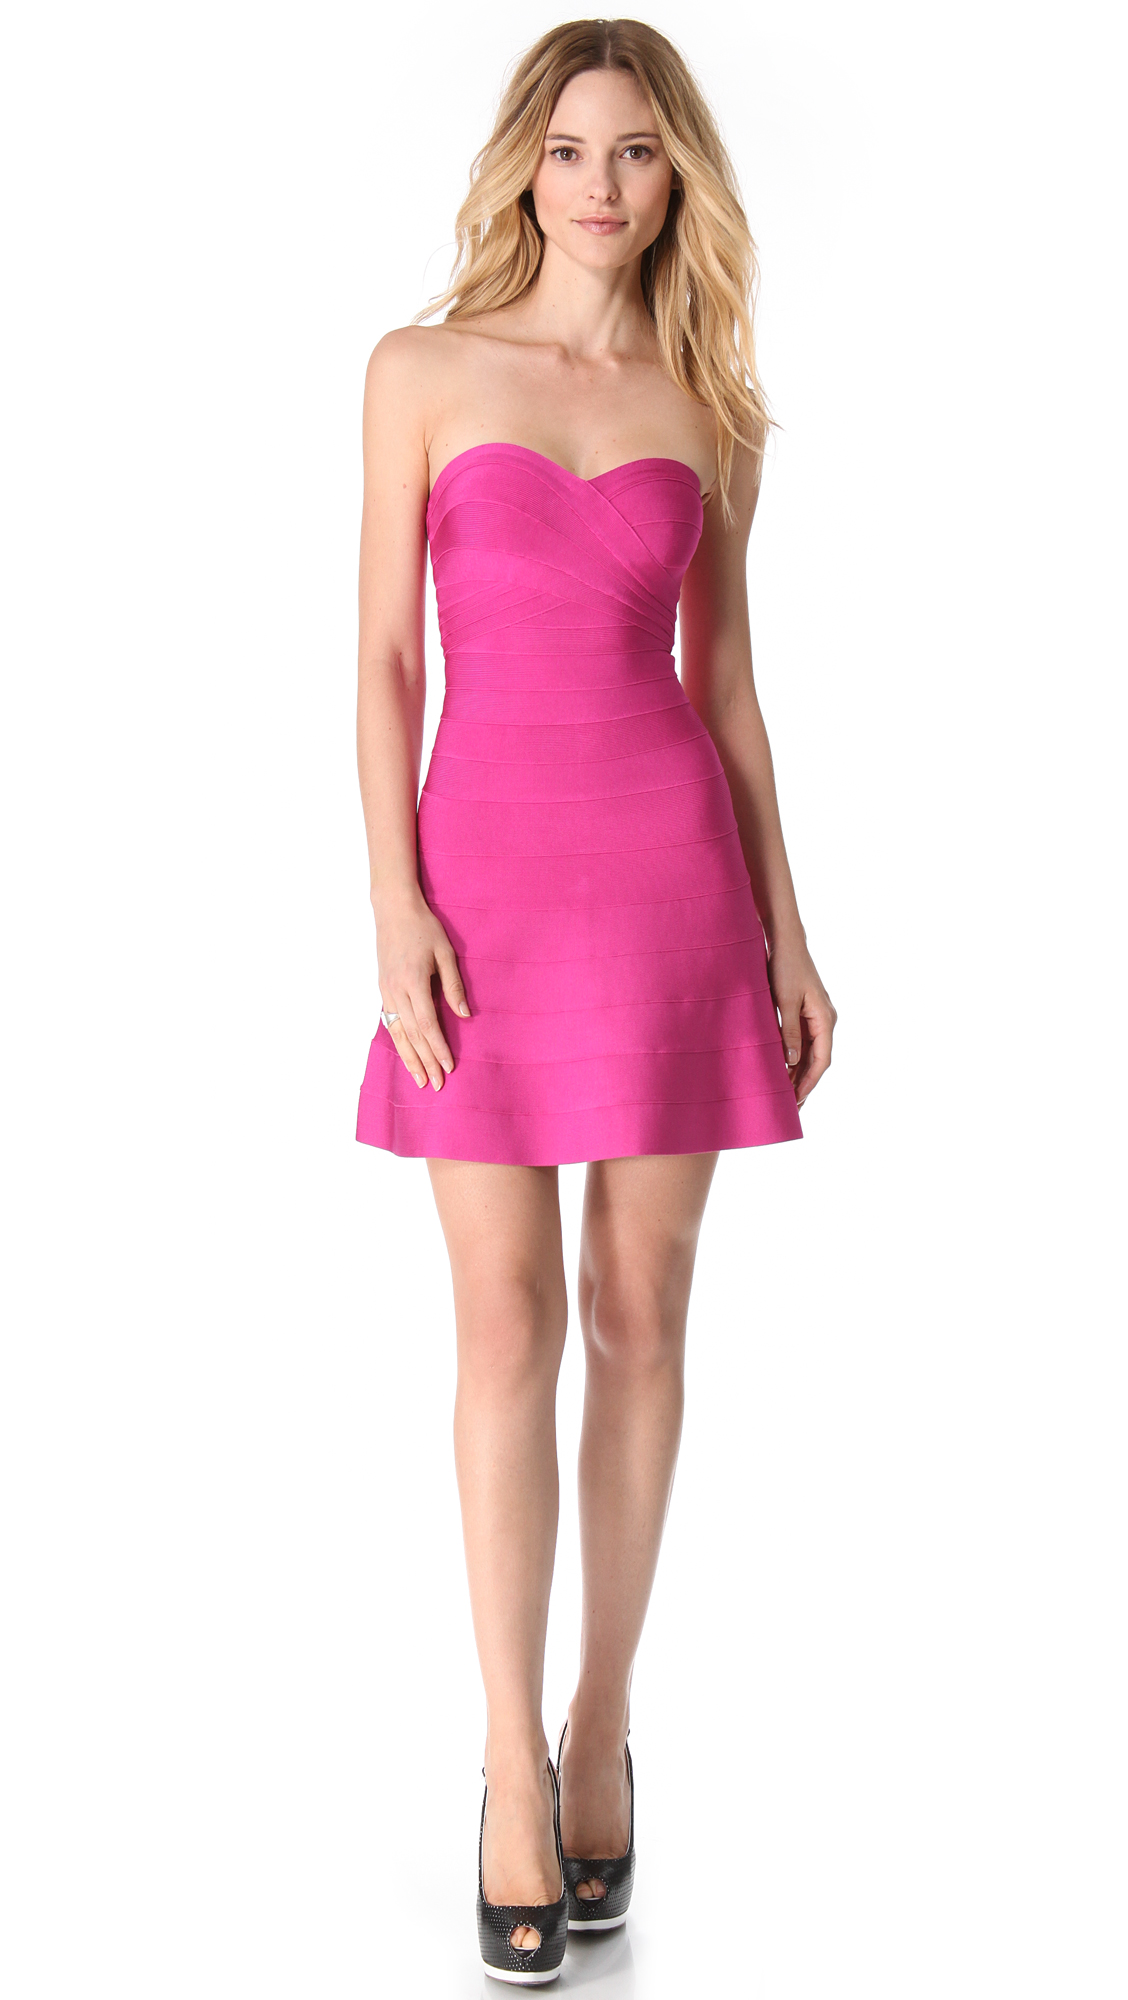 Lyst Herv 233 L 233 Ger Strapless Mid Thigh Dress In Pink